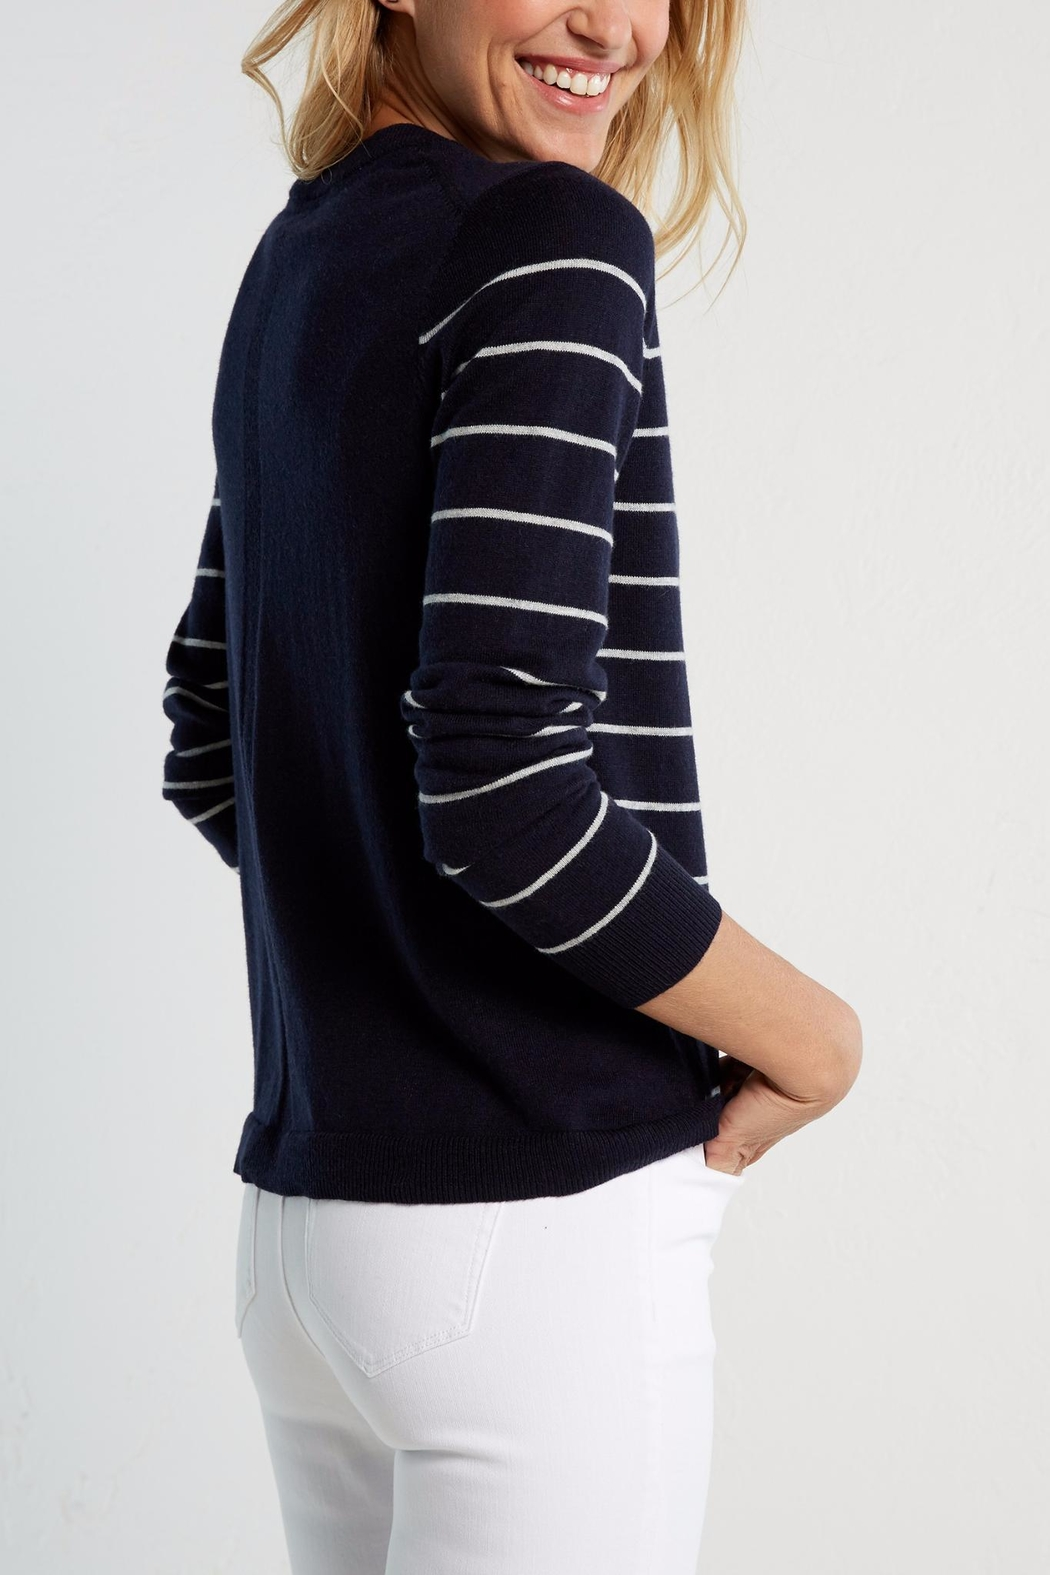 White Stuff Navy Meadow Sweater - Back Cropped Image